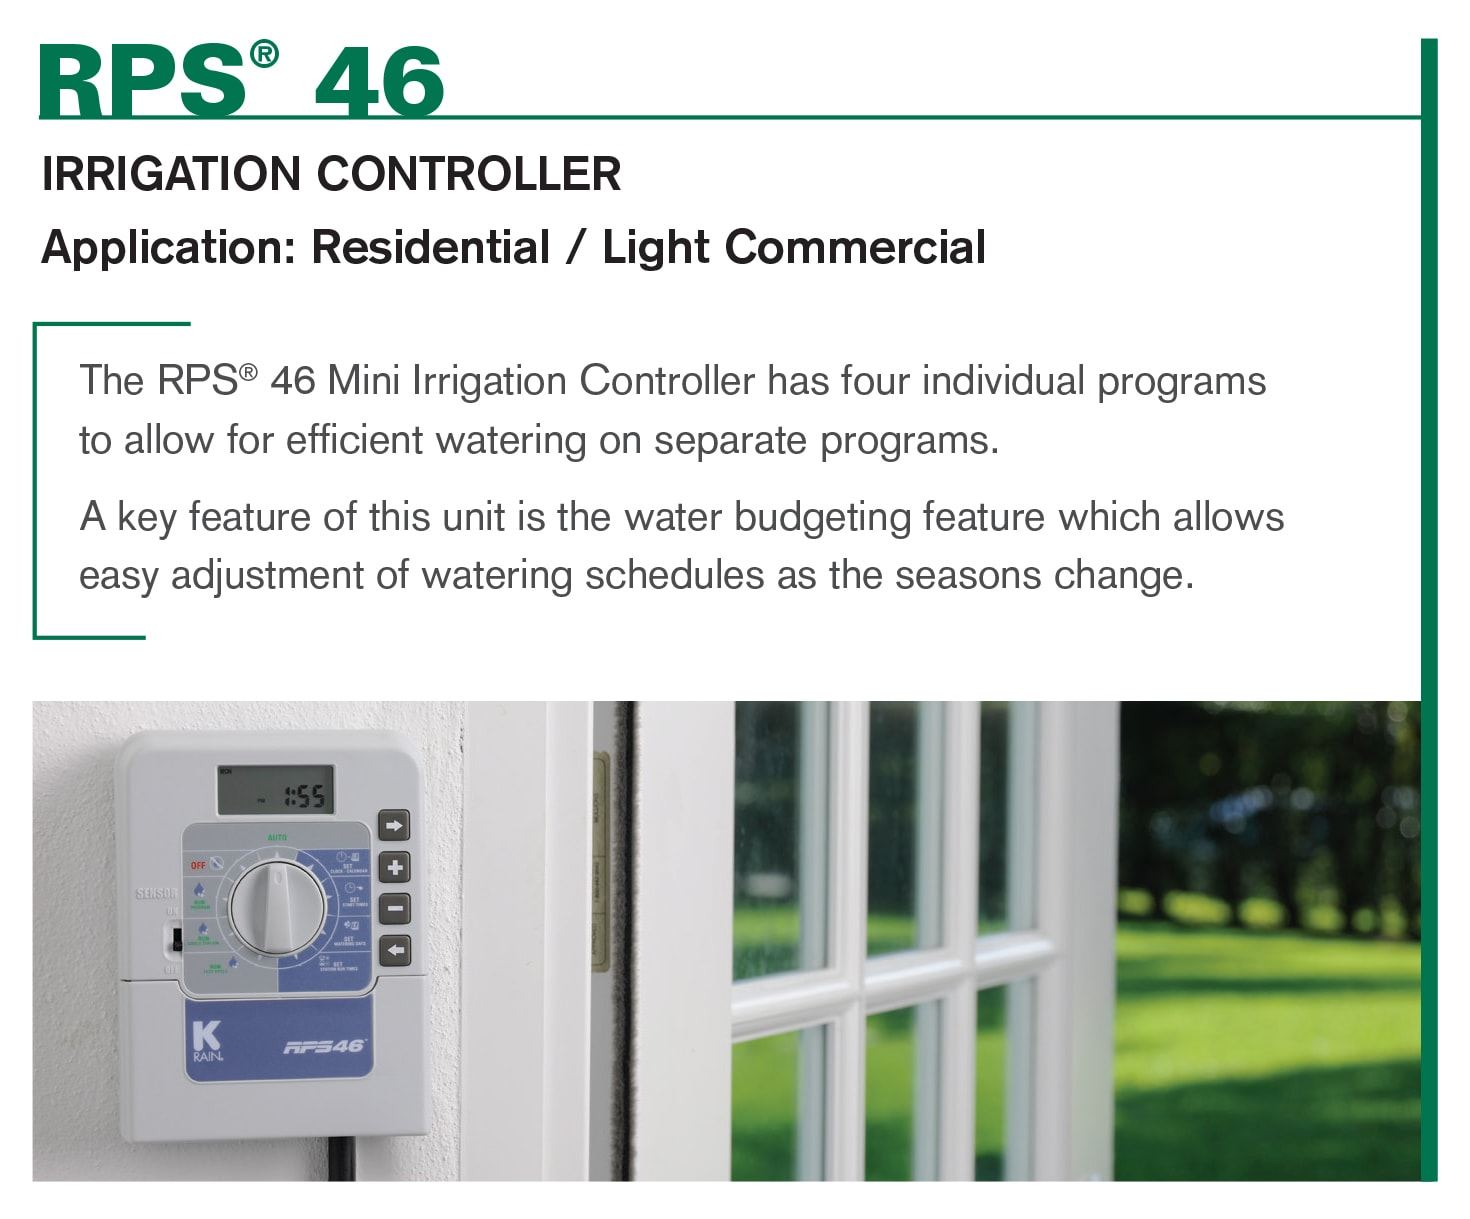 RPS46 Irrigation Controller